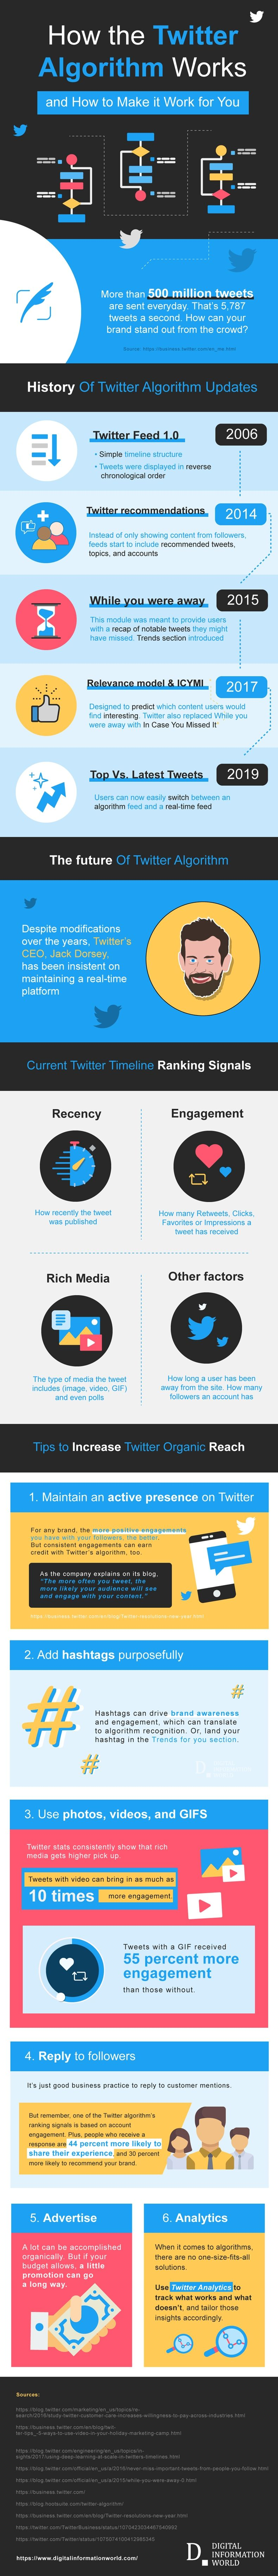 How The Twitter Algorithm Works [Infographic]